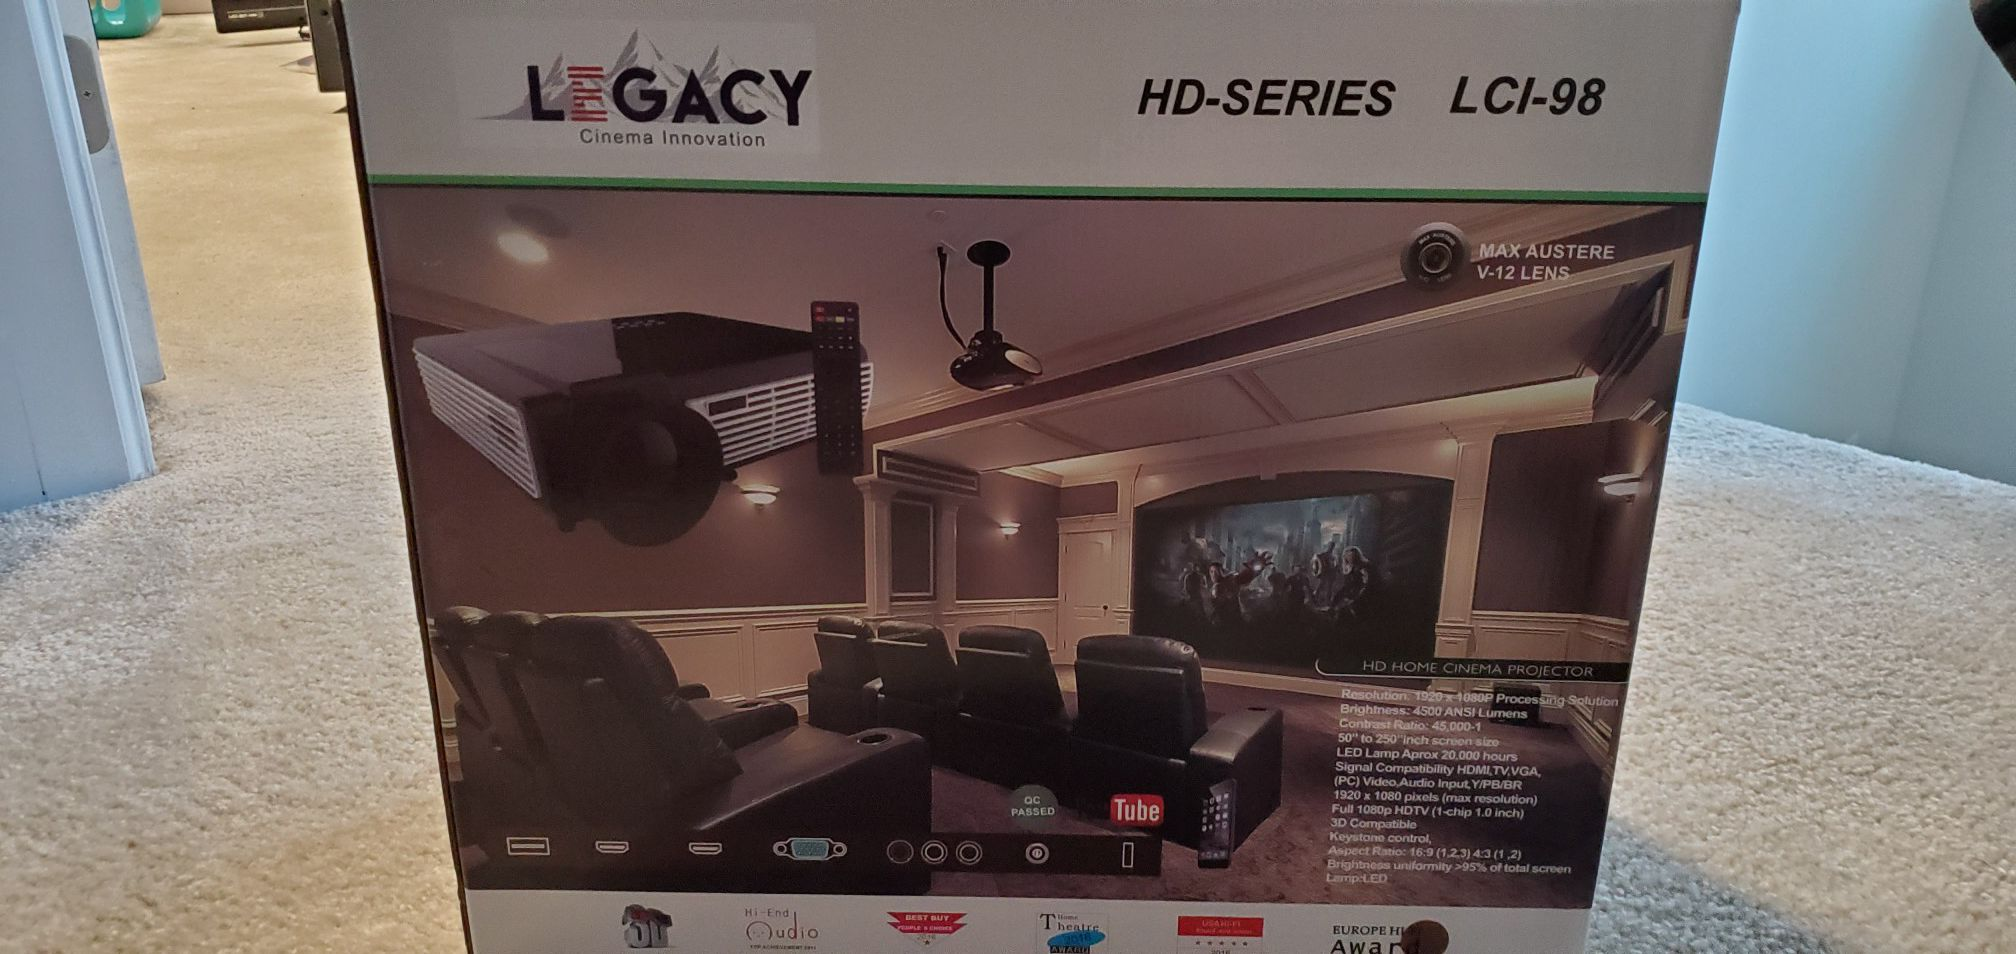 IN HOME PROJECTOR SETUP MSRP-$4,356